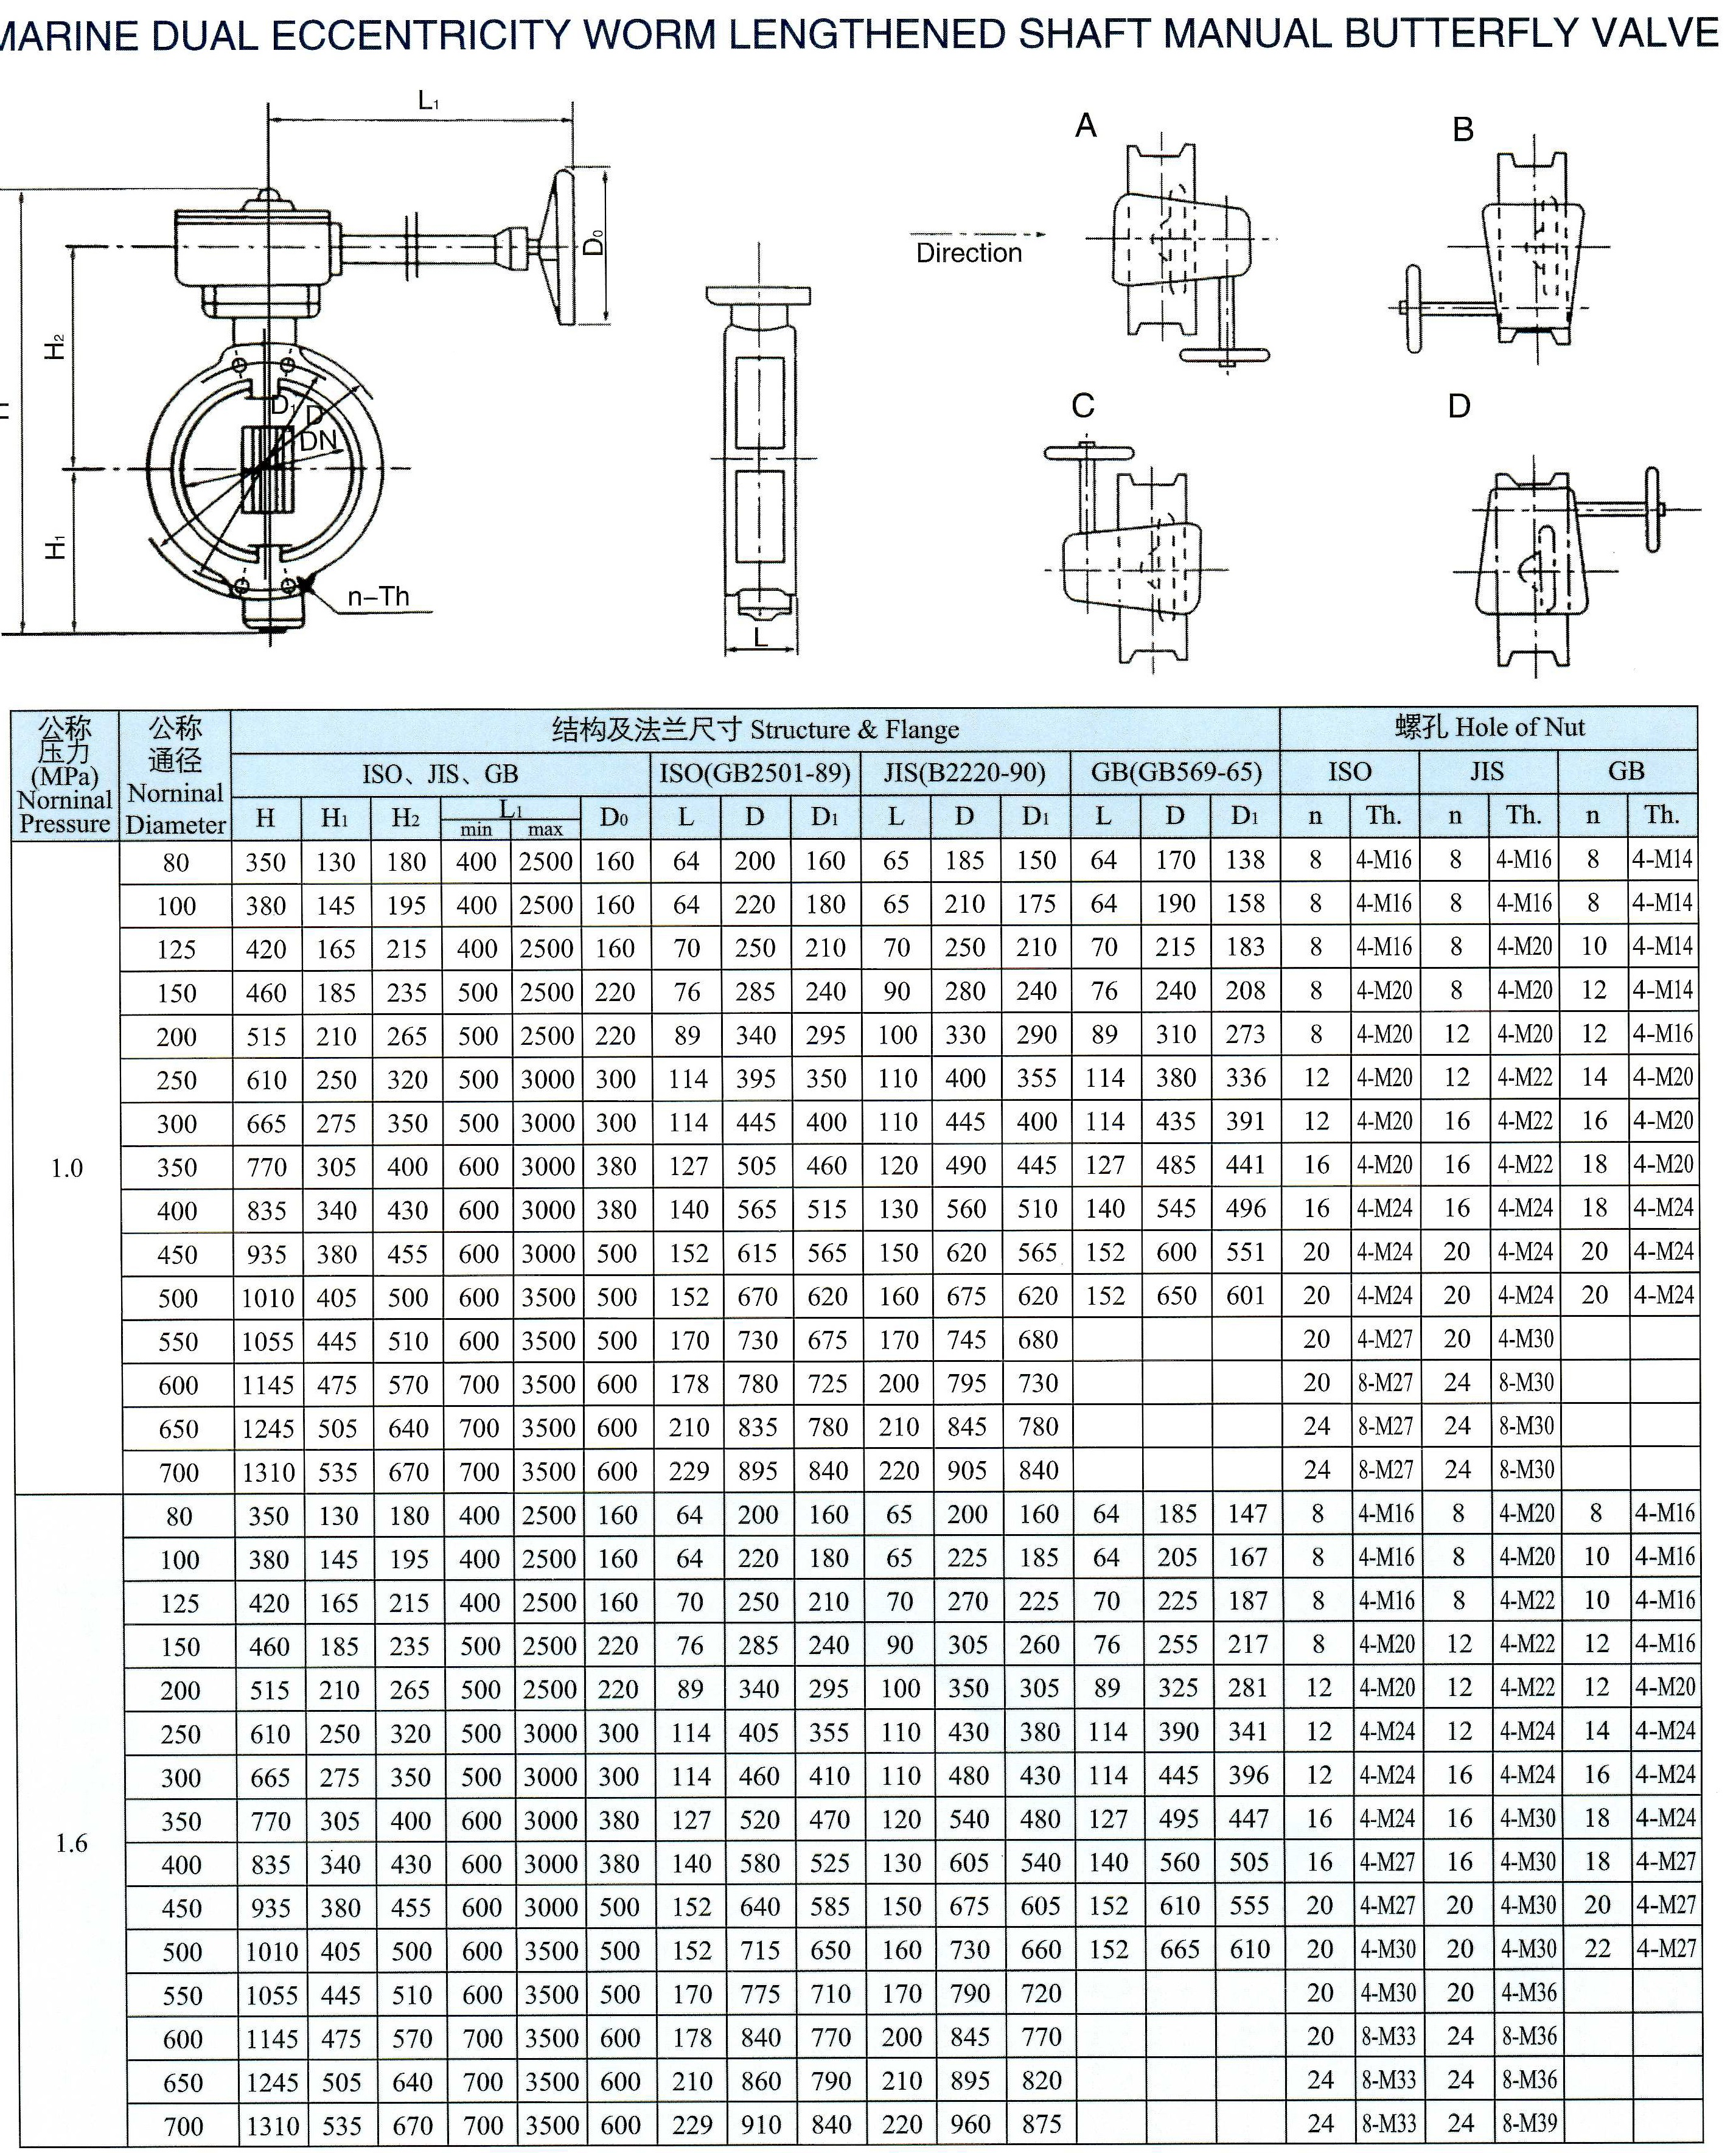 marine dual eccentricity worm lengthened shaft manual butterfly valve(SGC)